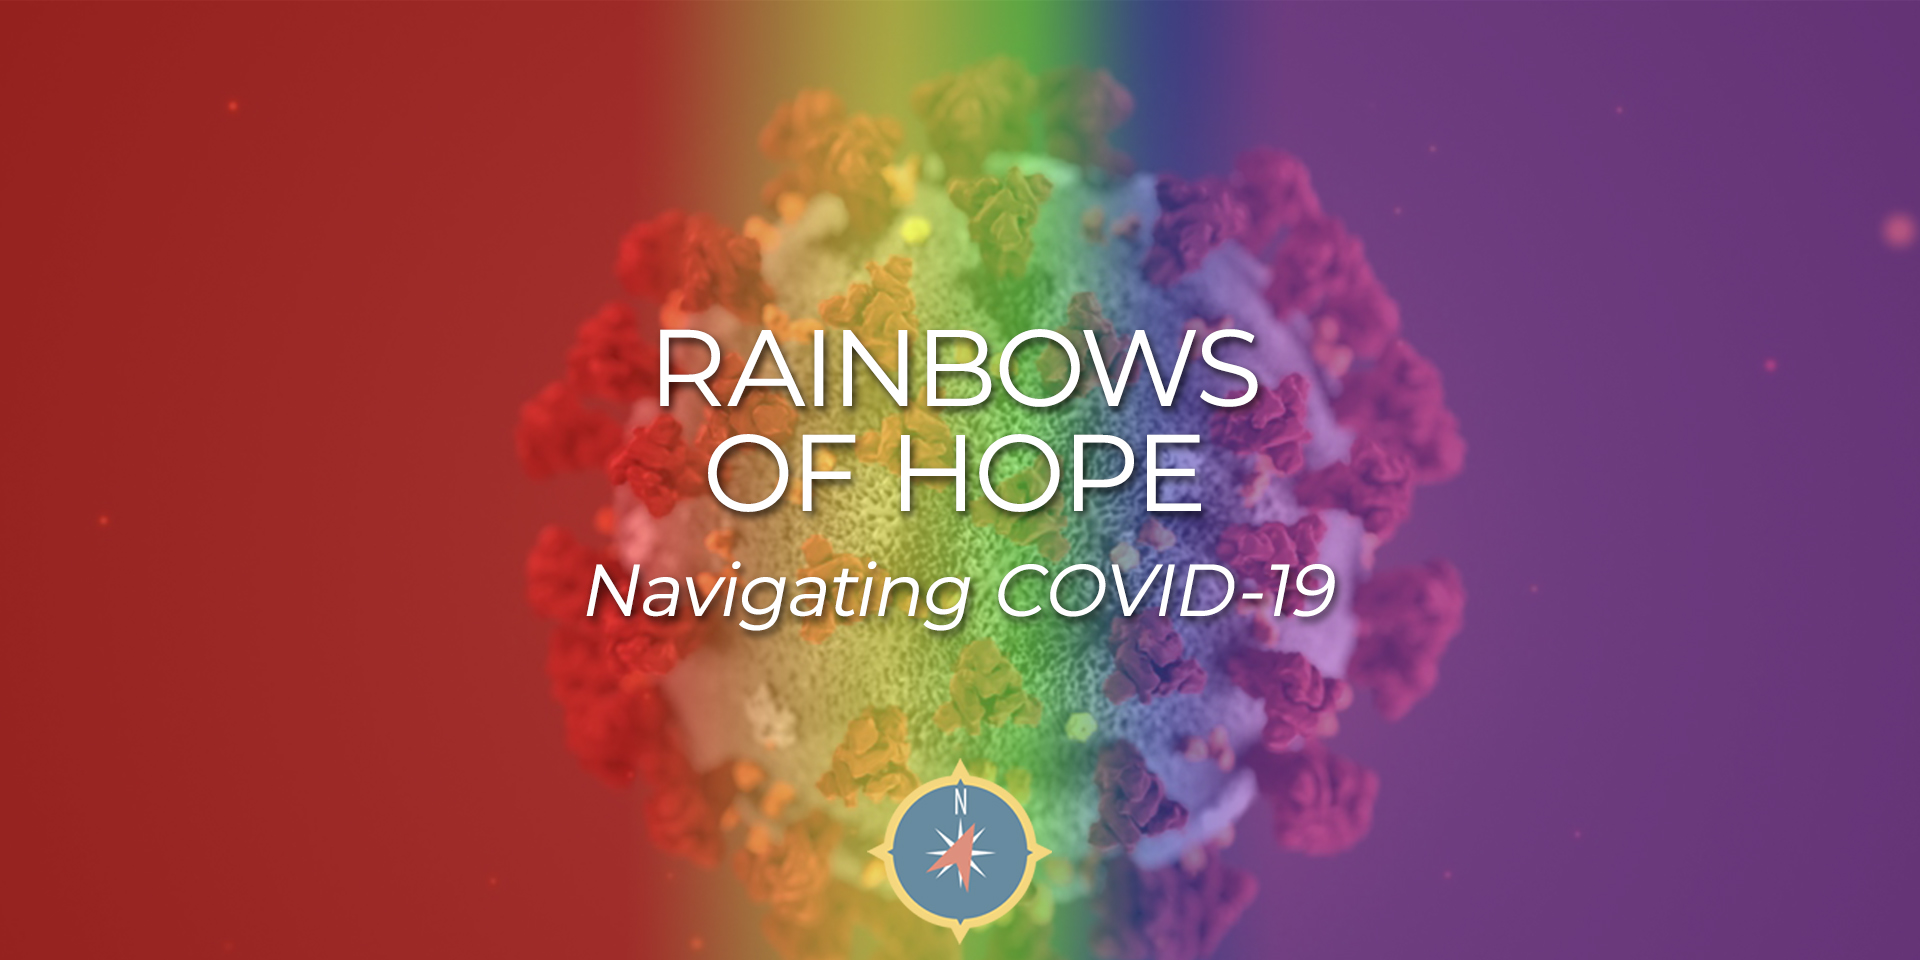 rainbows-hope-covid-19